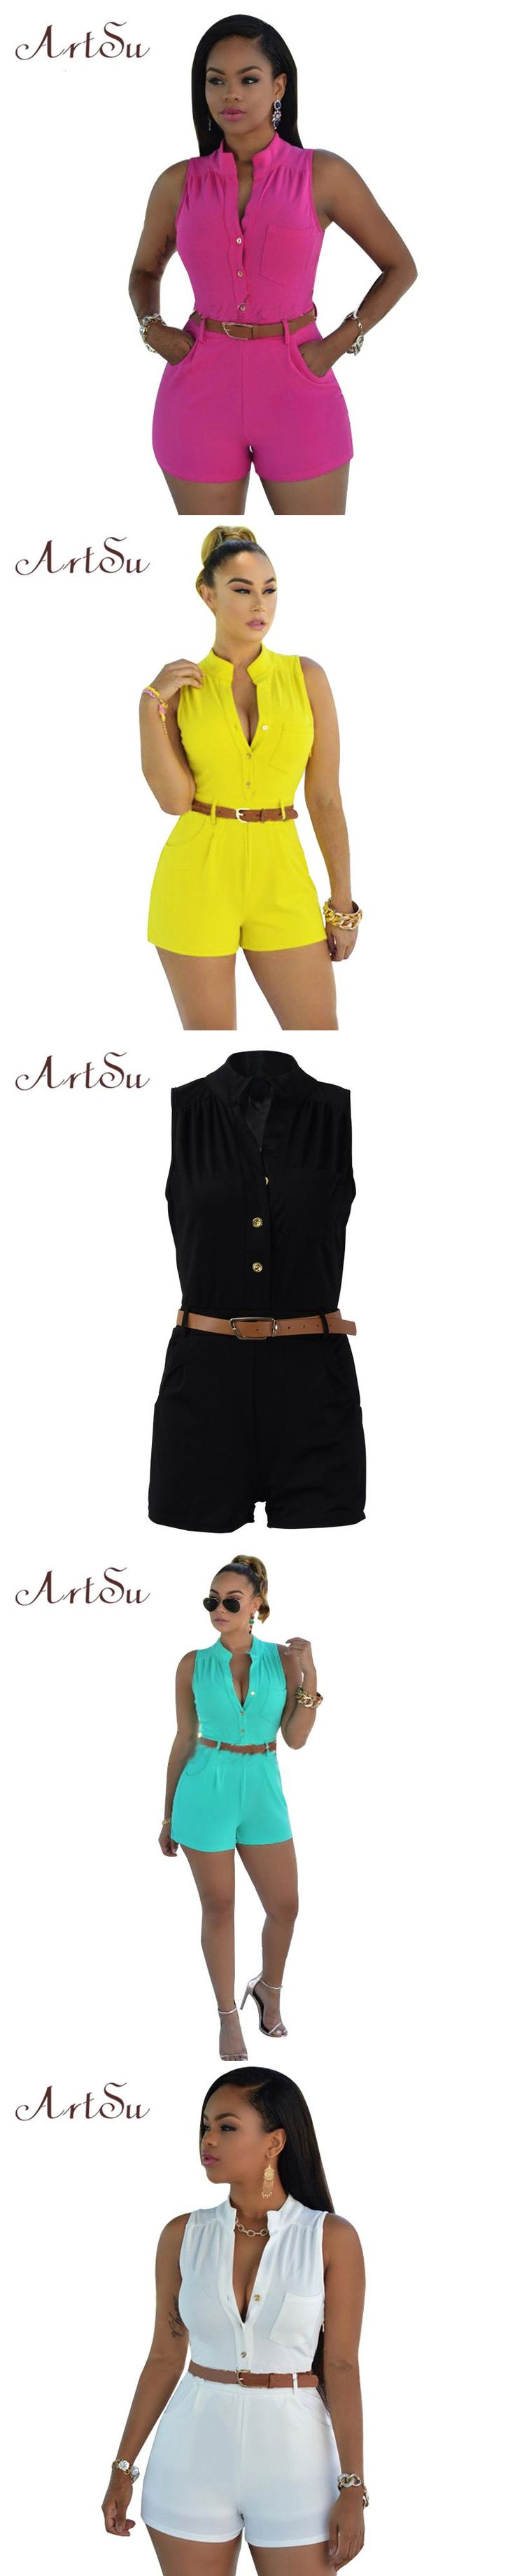 9c686caefaf ArtSu 11 colors 2017 summer romper bodycon rompers womens jumpsuit  sleeveless shorts S-XXL Sexy